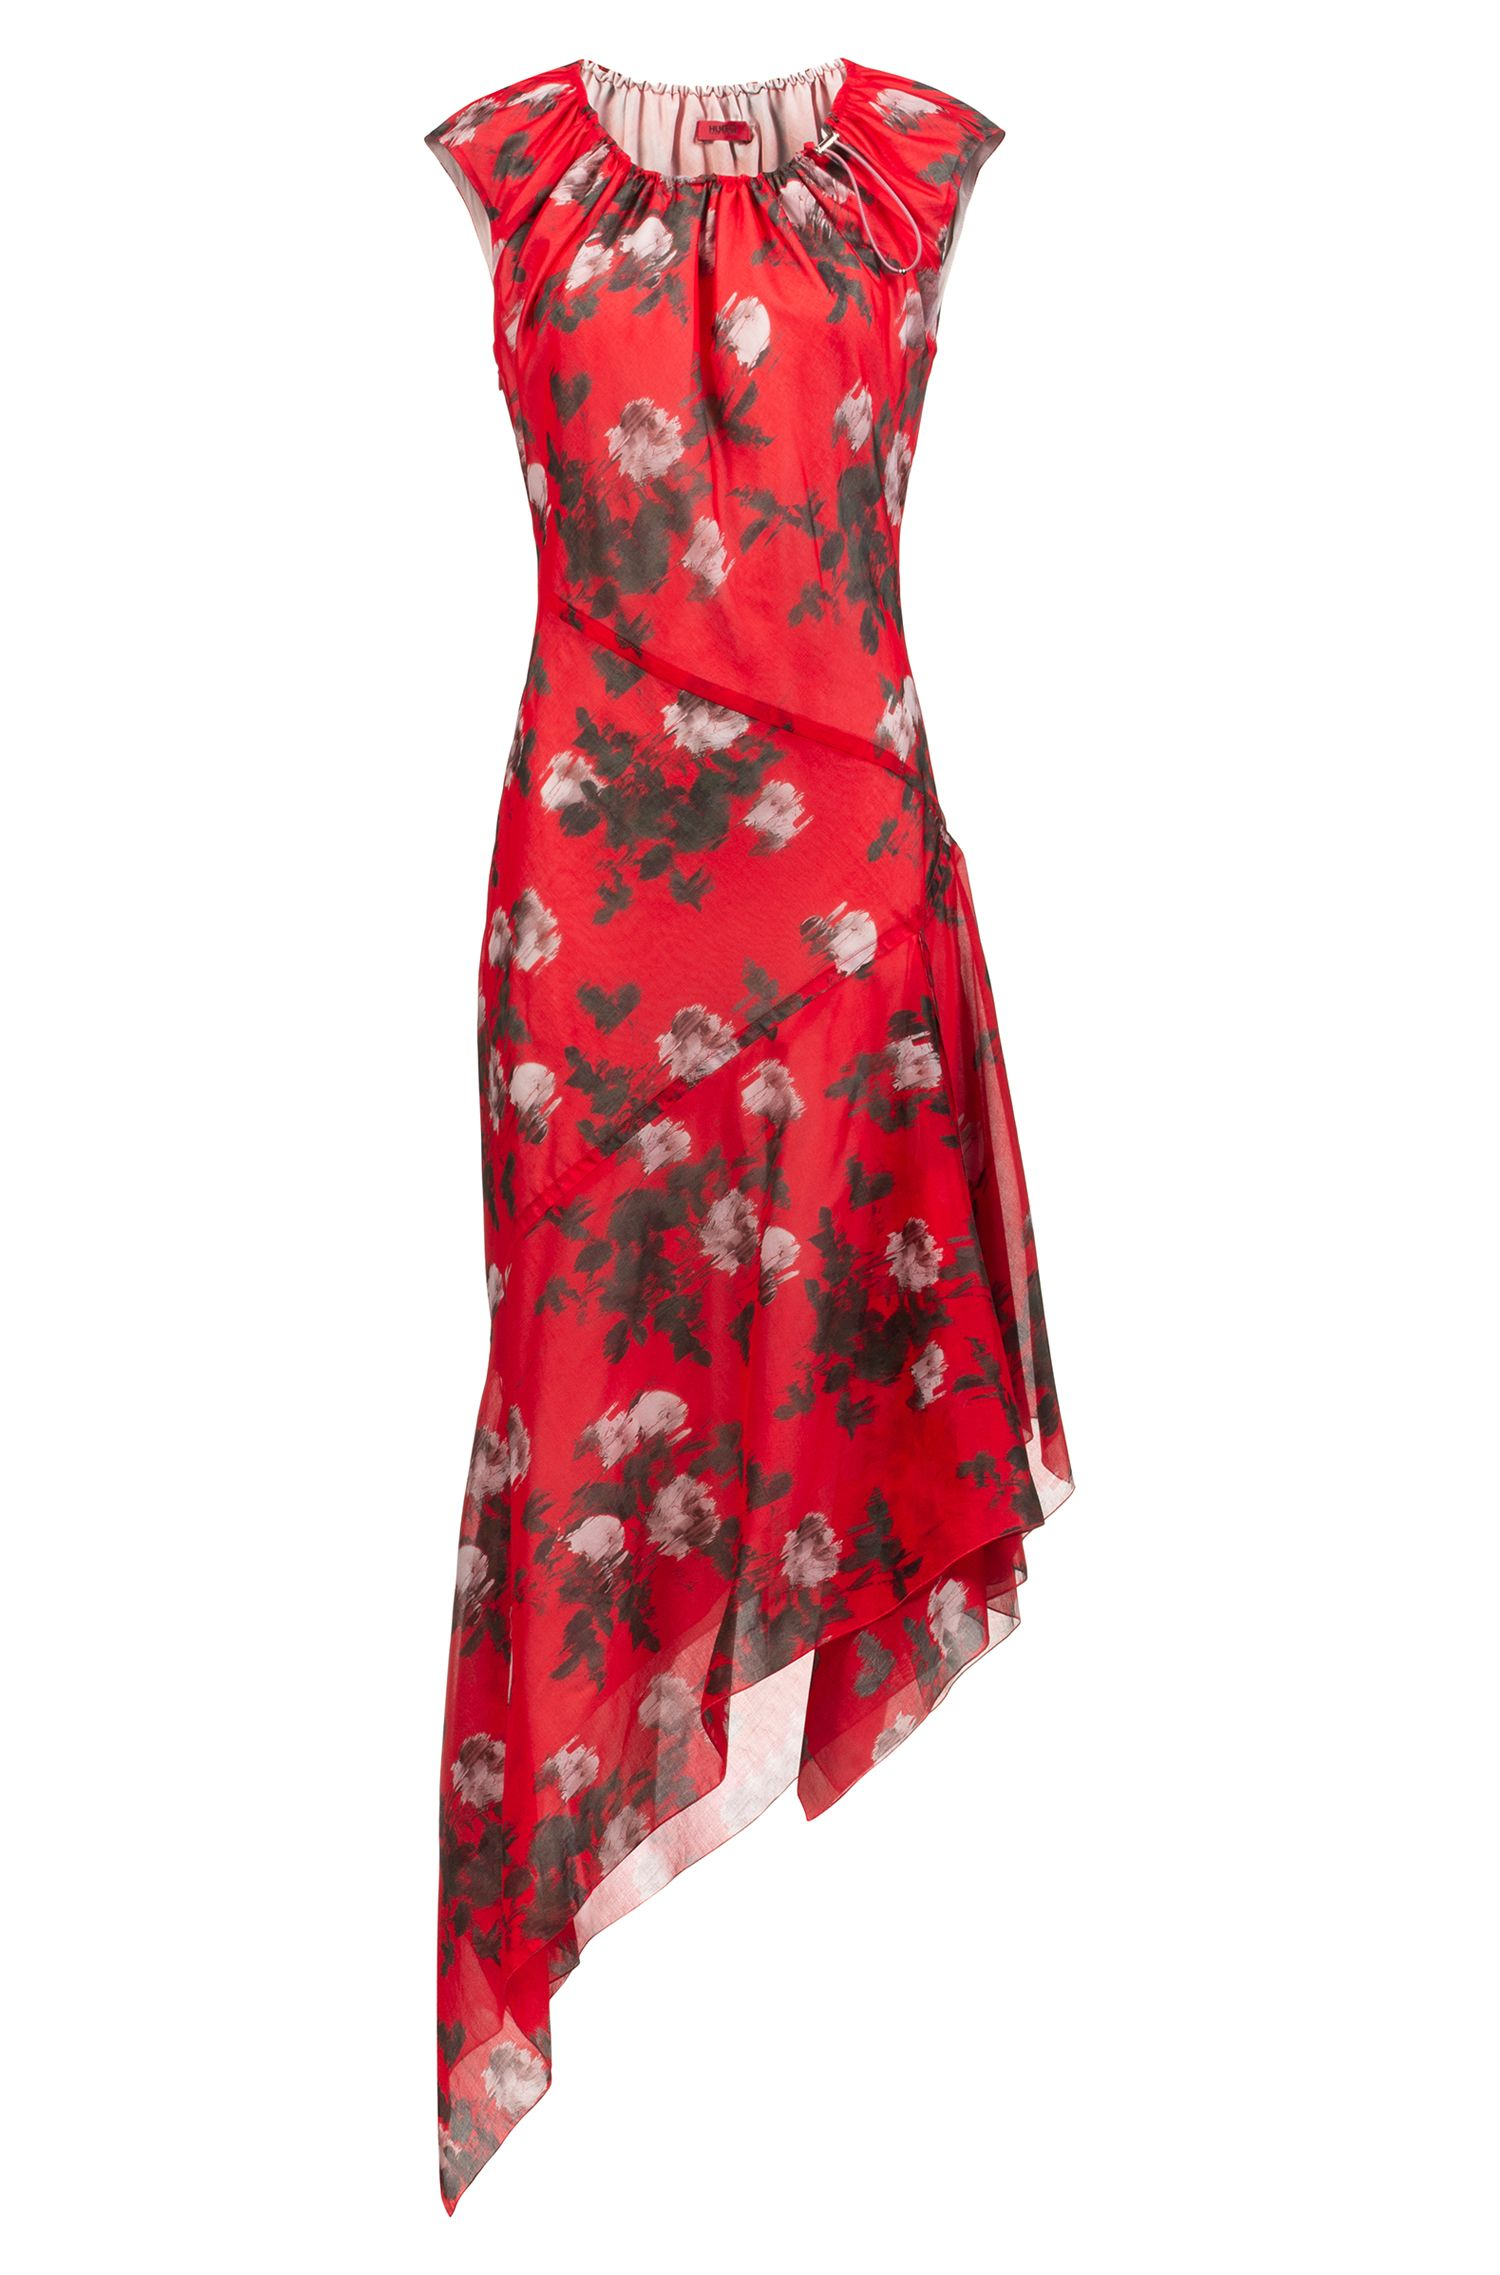 Asymmetric-hem dress with floral print and drawstring neckline, Patterned